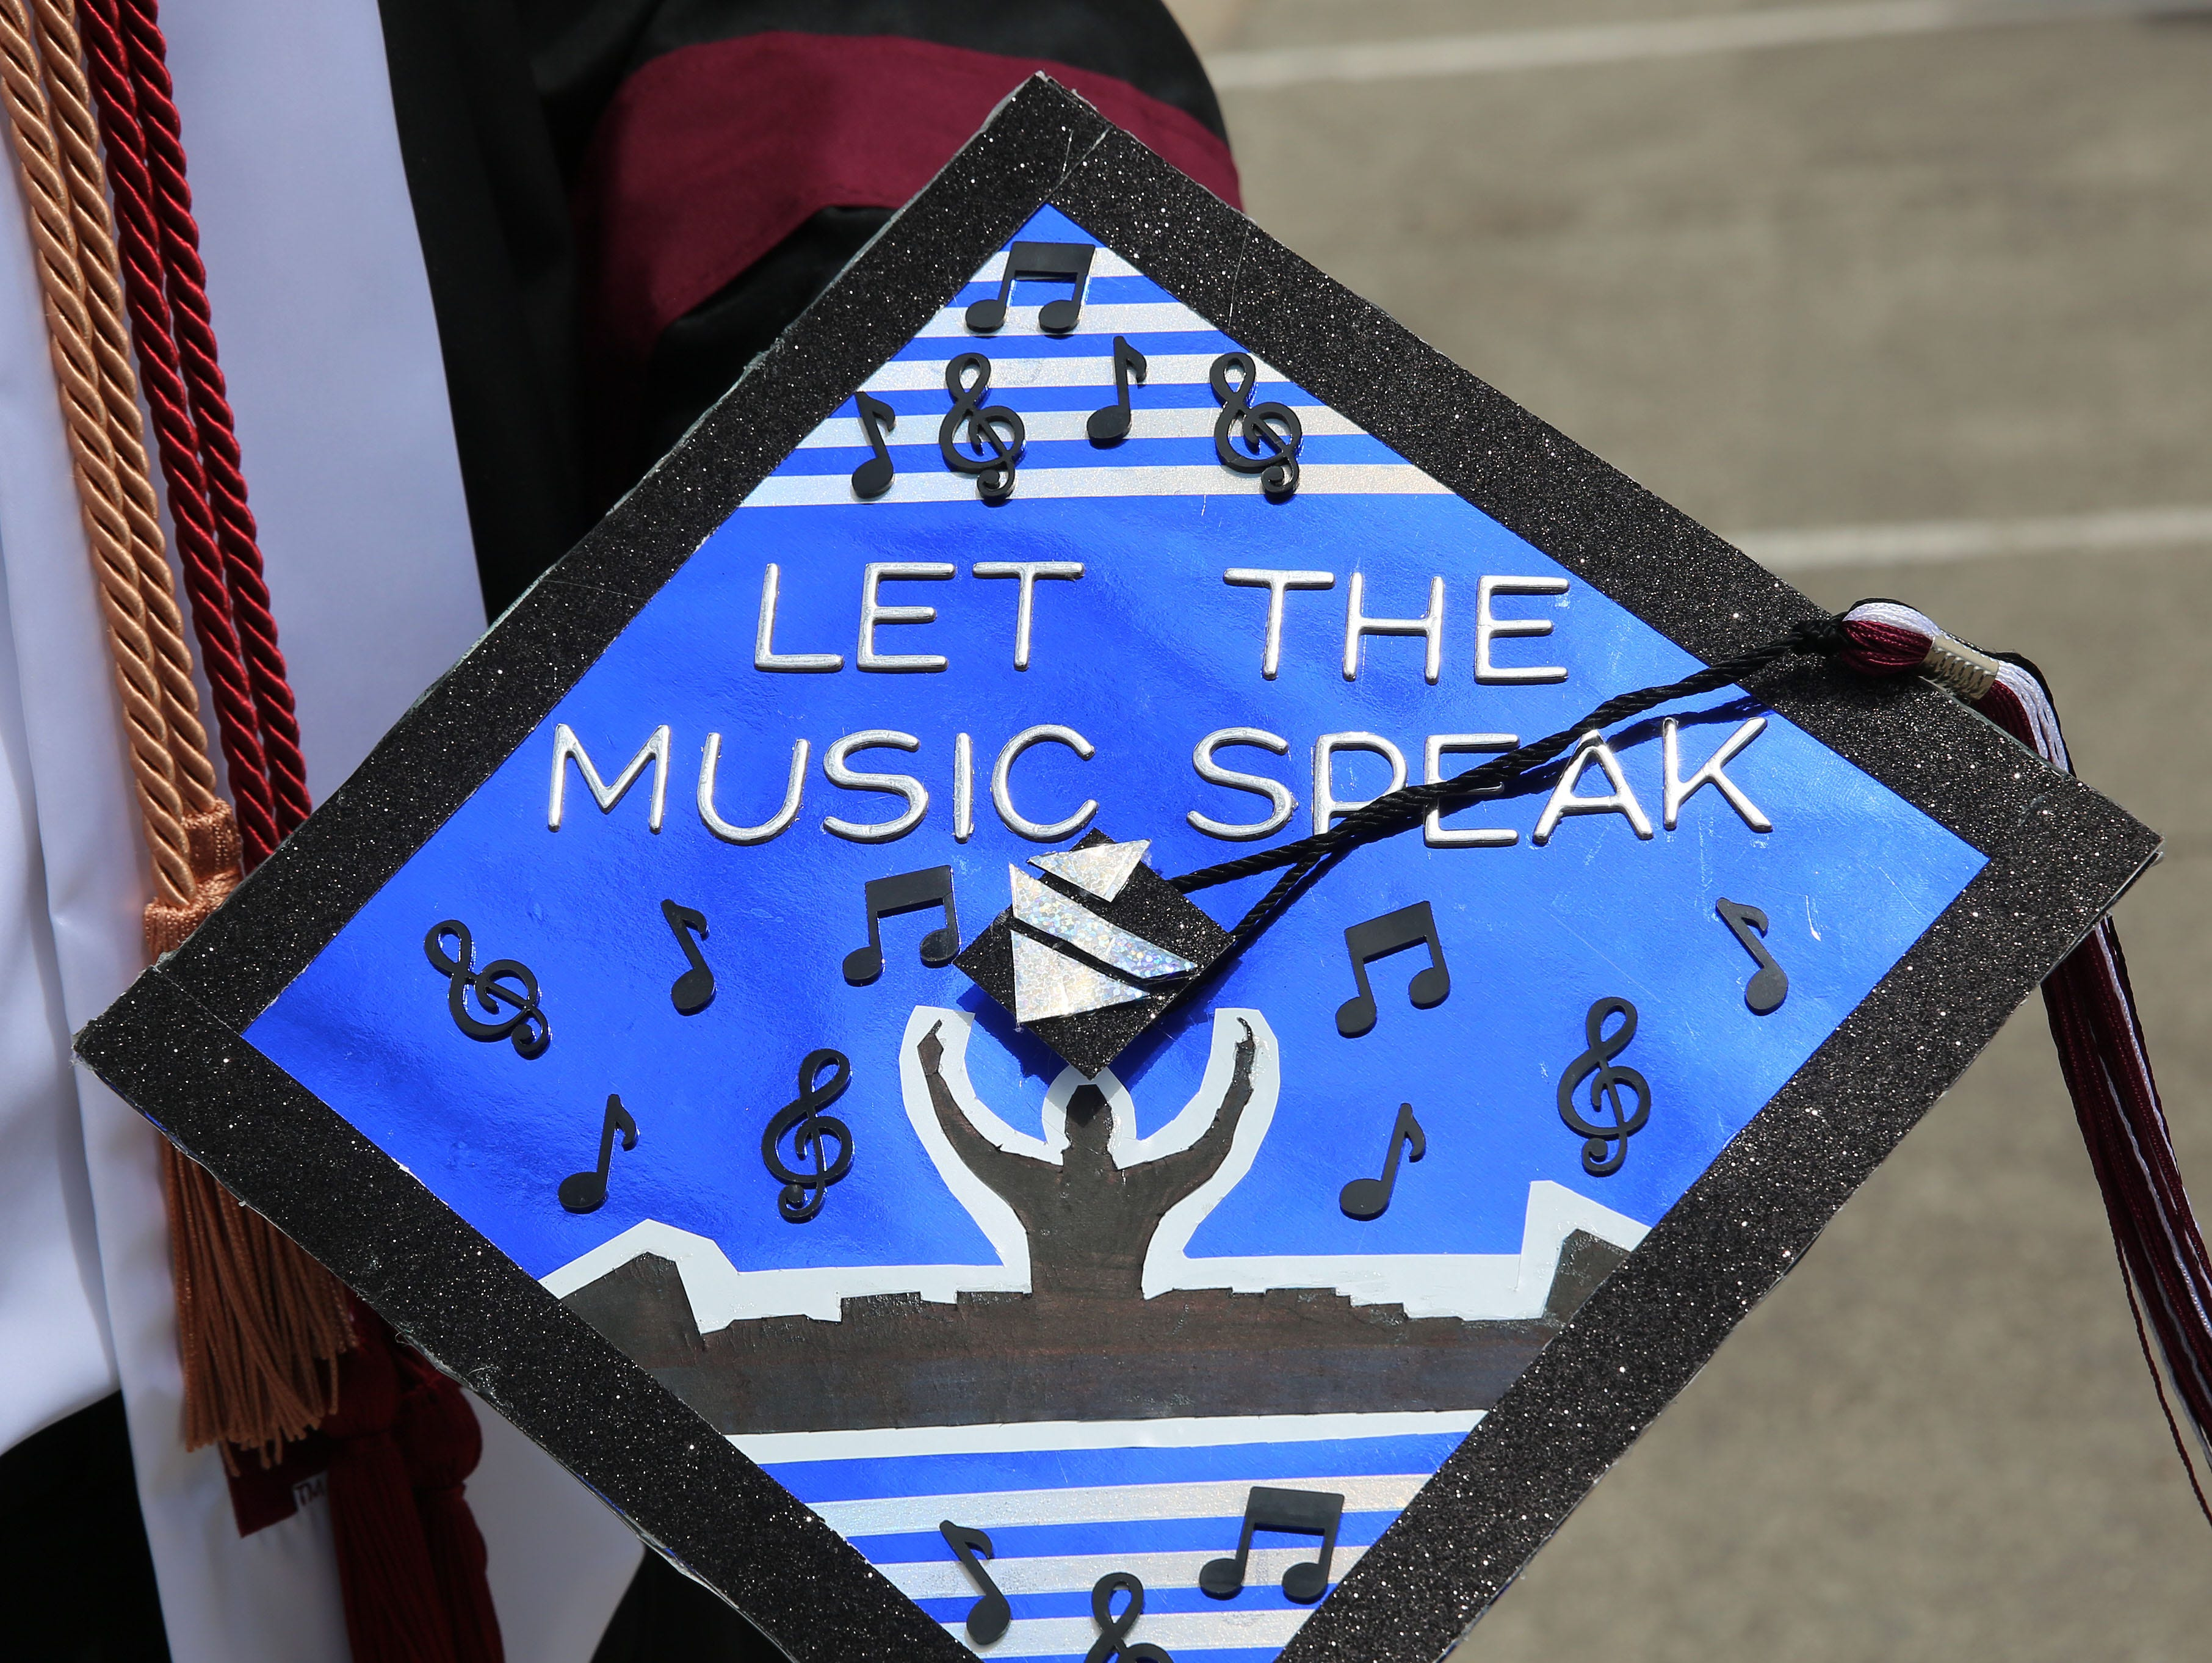 """Let the music speak,"" is a quote from one of Jorge Martinez' favorite musicians. He earned a Bachelor of Arts Degree in business administration, with a concentration in marketing, along with two minors in finance in advertising. Marketing has always been one of his passions, he said, and so has music. Martinez said he's striving towards a career in music marketing."